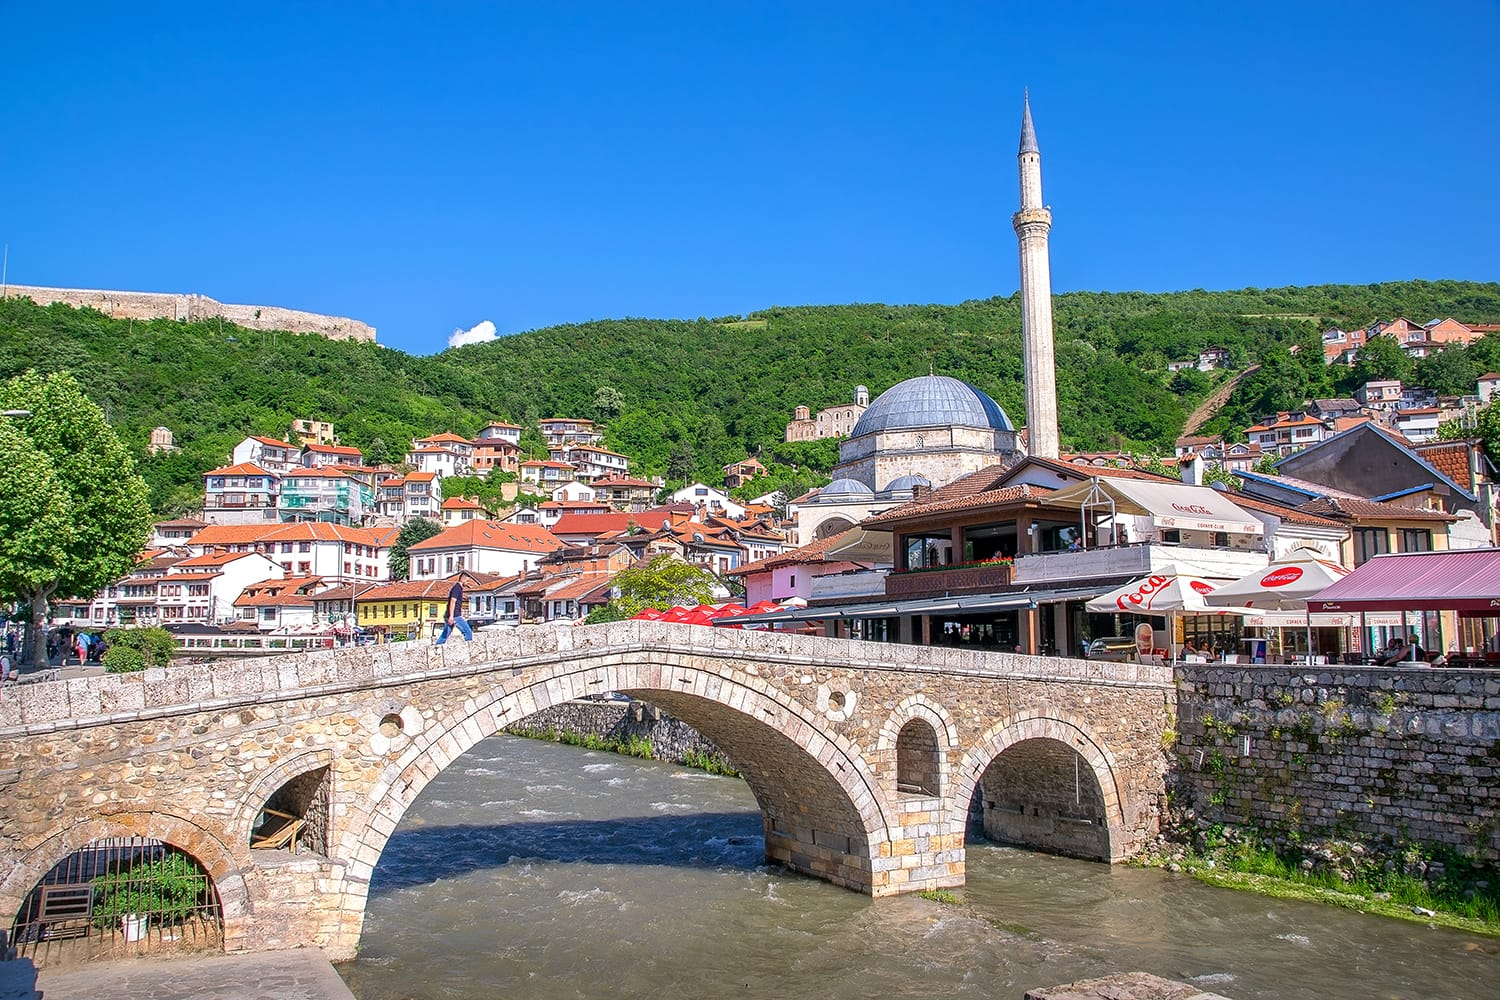 Prizren is a historic city located on the banks of the Prizren Bistrica river, and on the slopes of the Sar Mountains in the southern part of Kosovo.